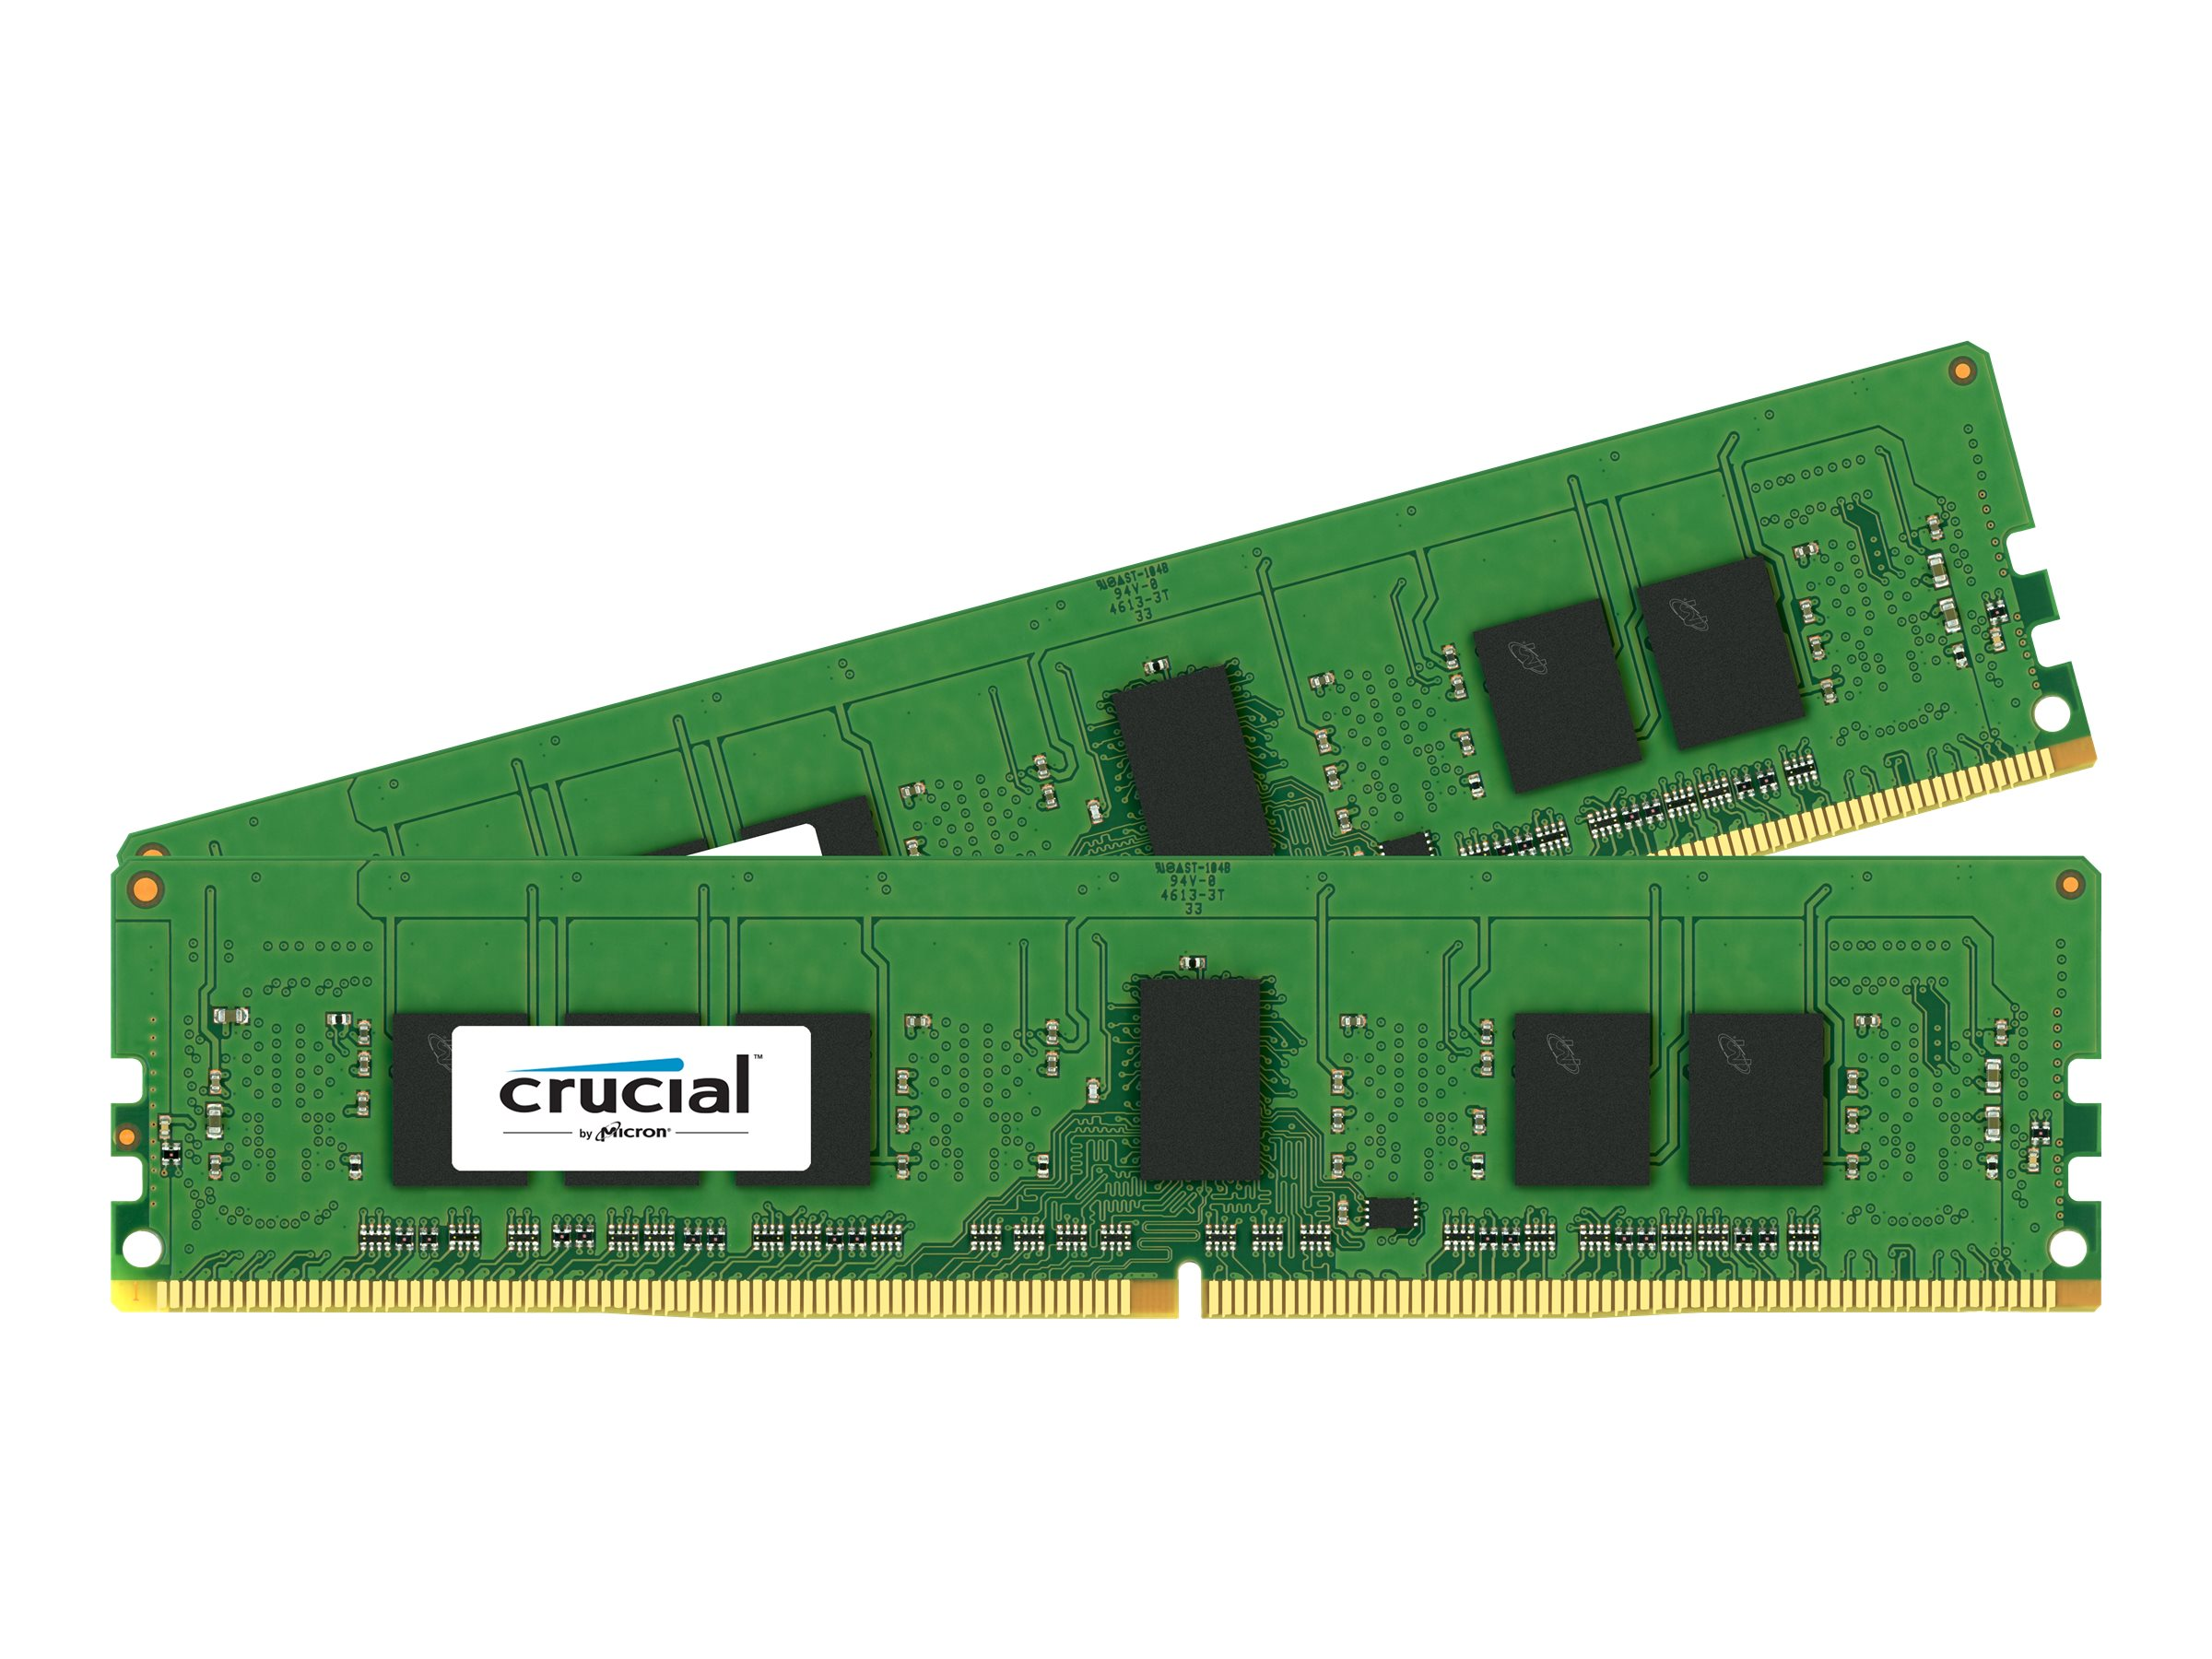 Crucial 8GB PC4-17000 288-pin DDR4 SDRAM RDIMM Kit